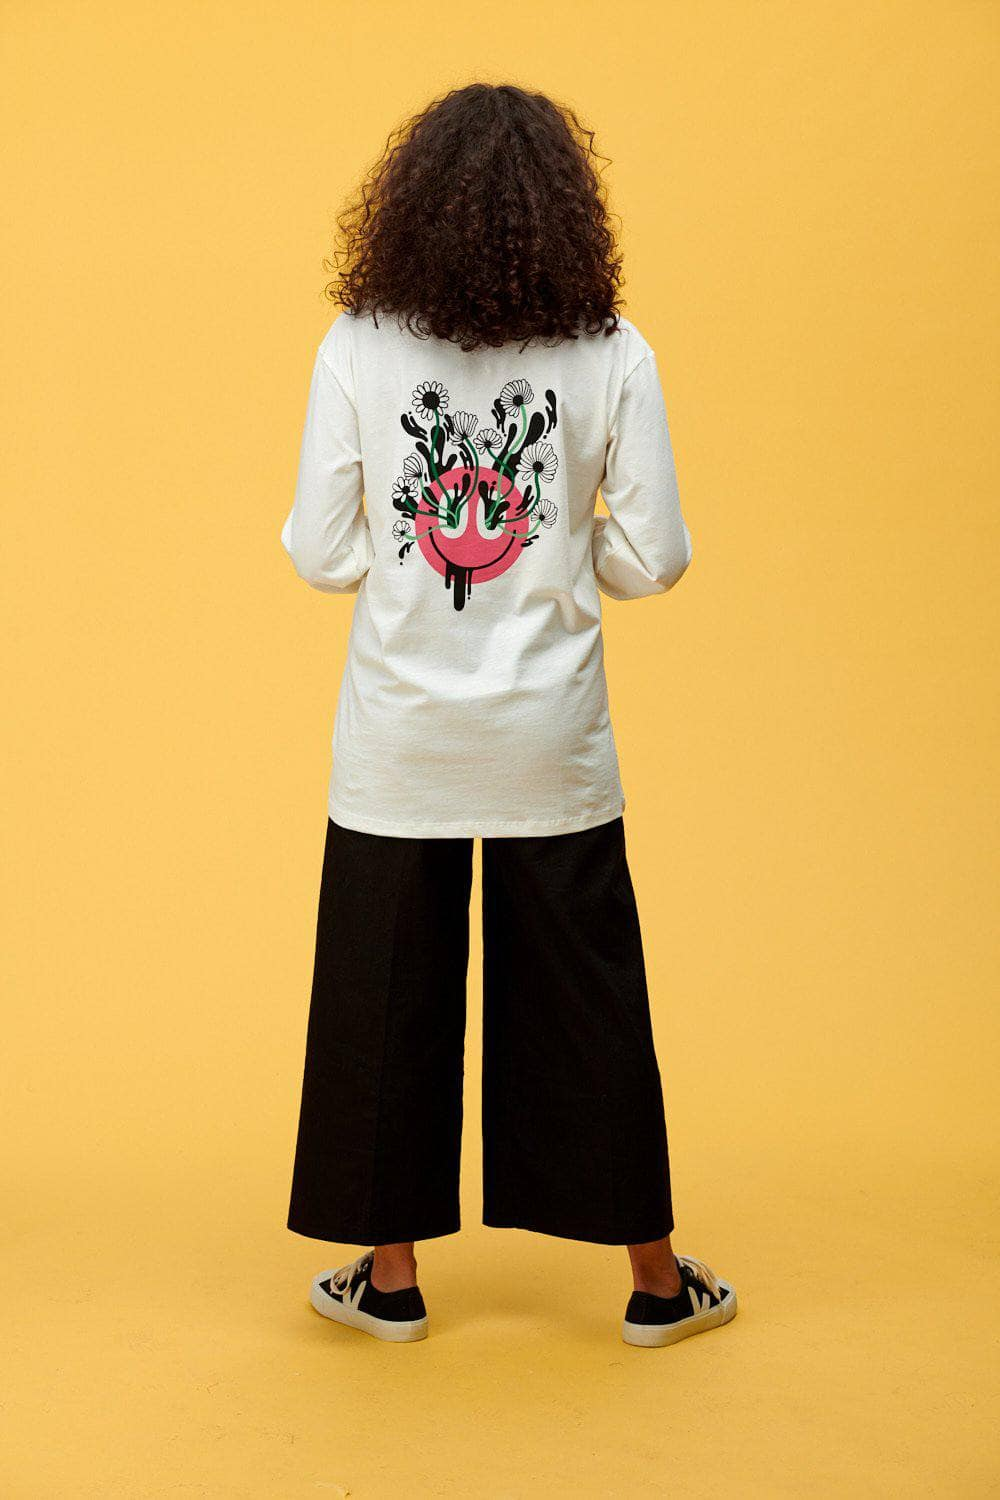 Lucy & Yak Tops 'Kenny' Long Sleeved Skater Top With Pink Face and Flowers in White by Lindsey Made This